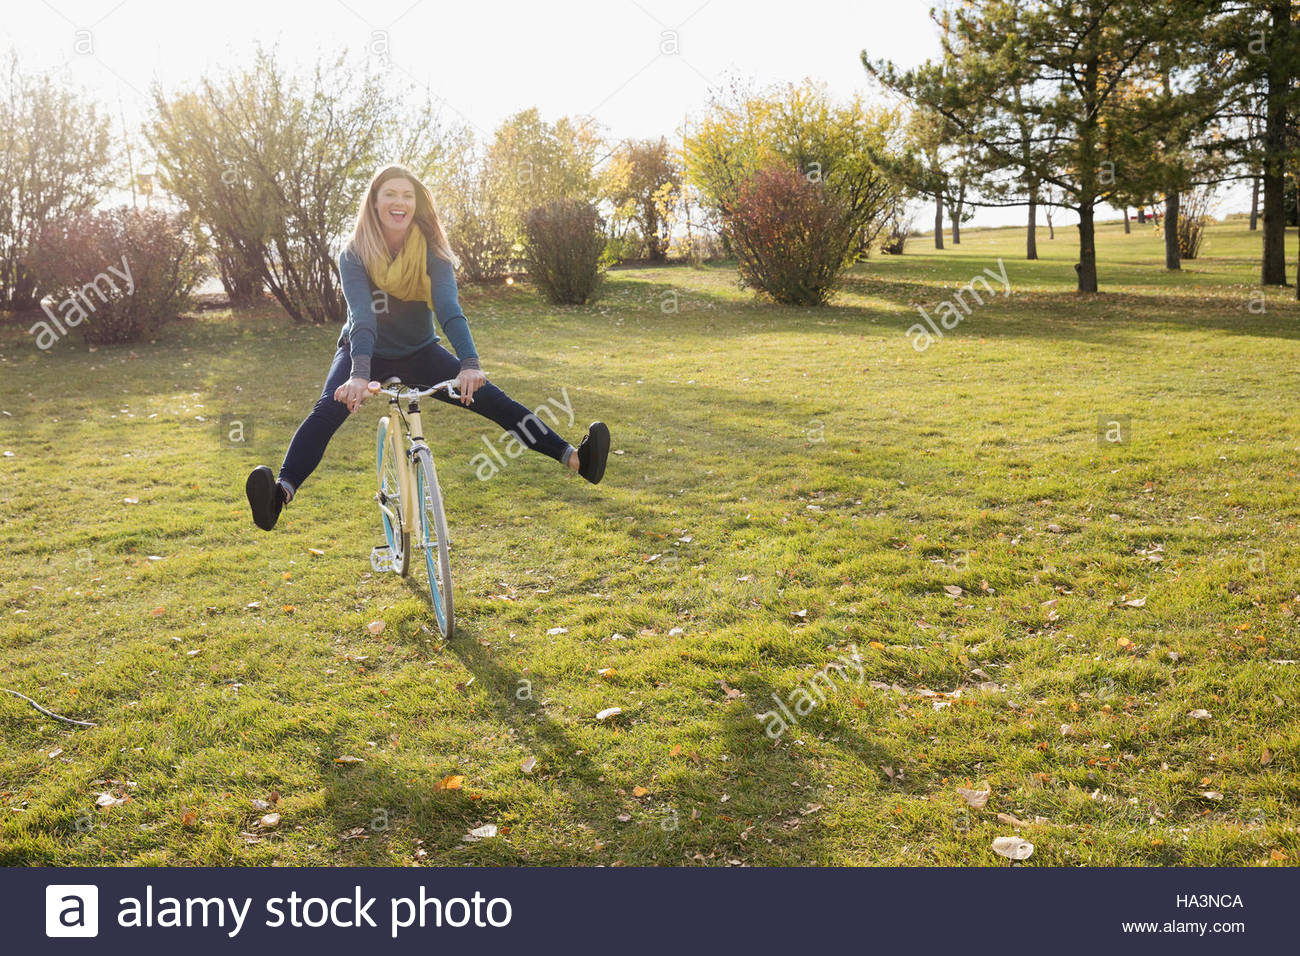 Femme espiègle riding bicycle in sunny autumn park Photo Stock